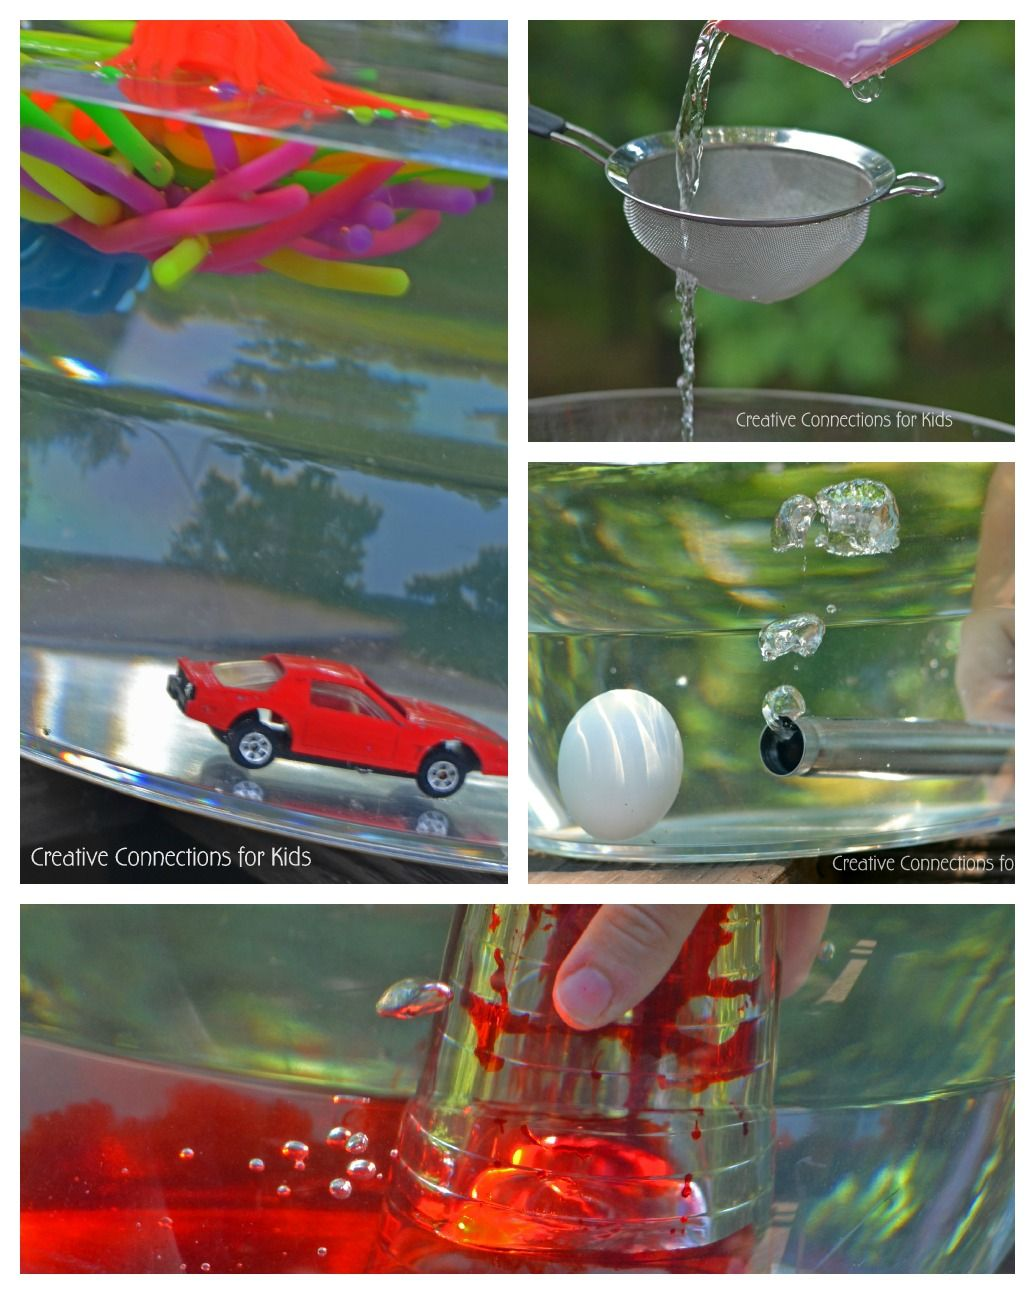 Water Science with Everyday Objects - cool off and learn too during ...